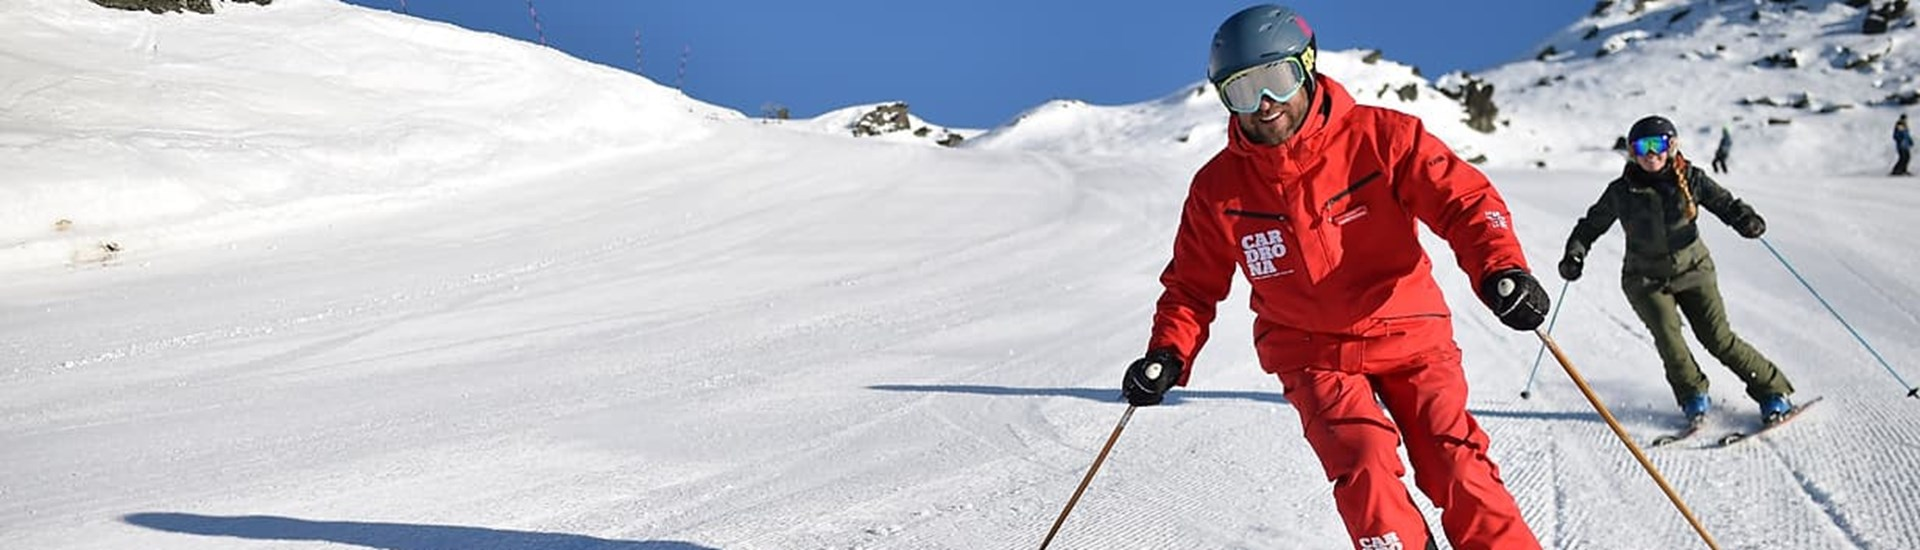 Cardrona ski snowboard private lessons winter New Zealand